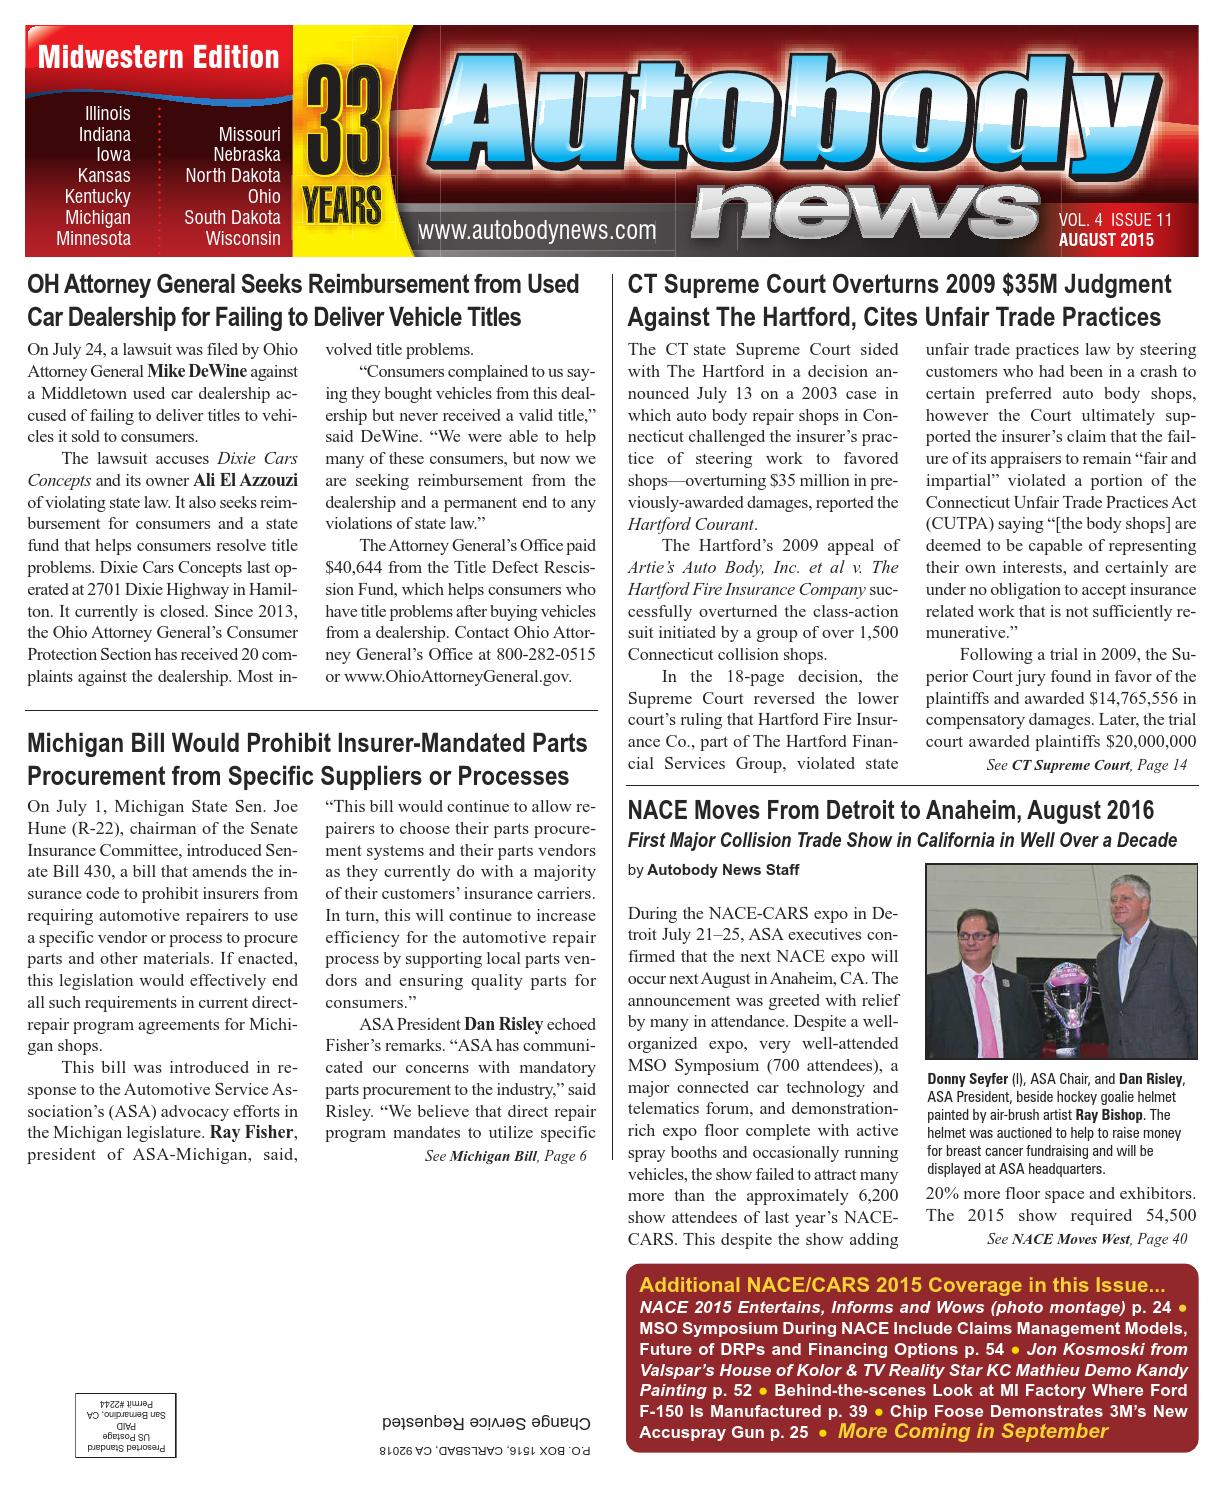 Midwestern August 2015 Issue by Autobody News - issuu